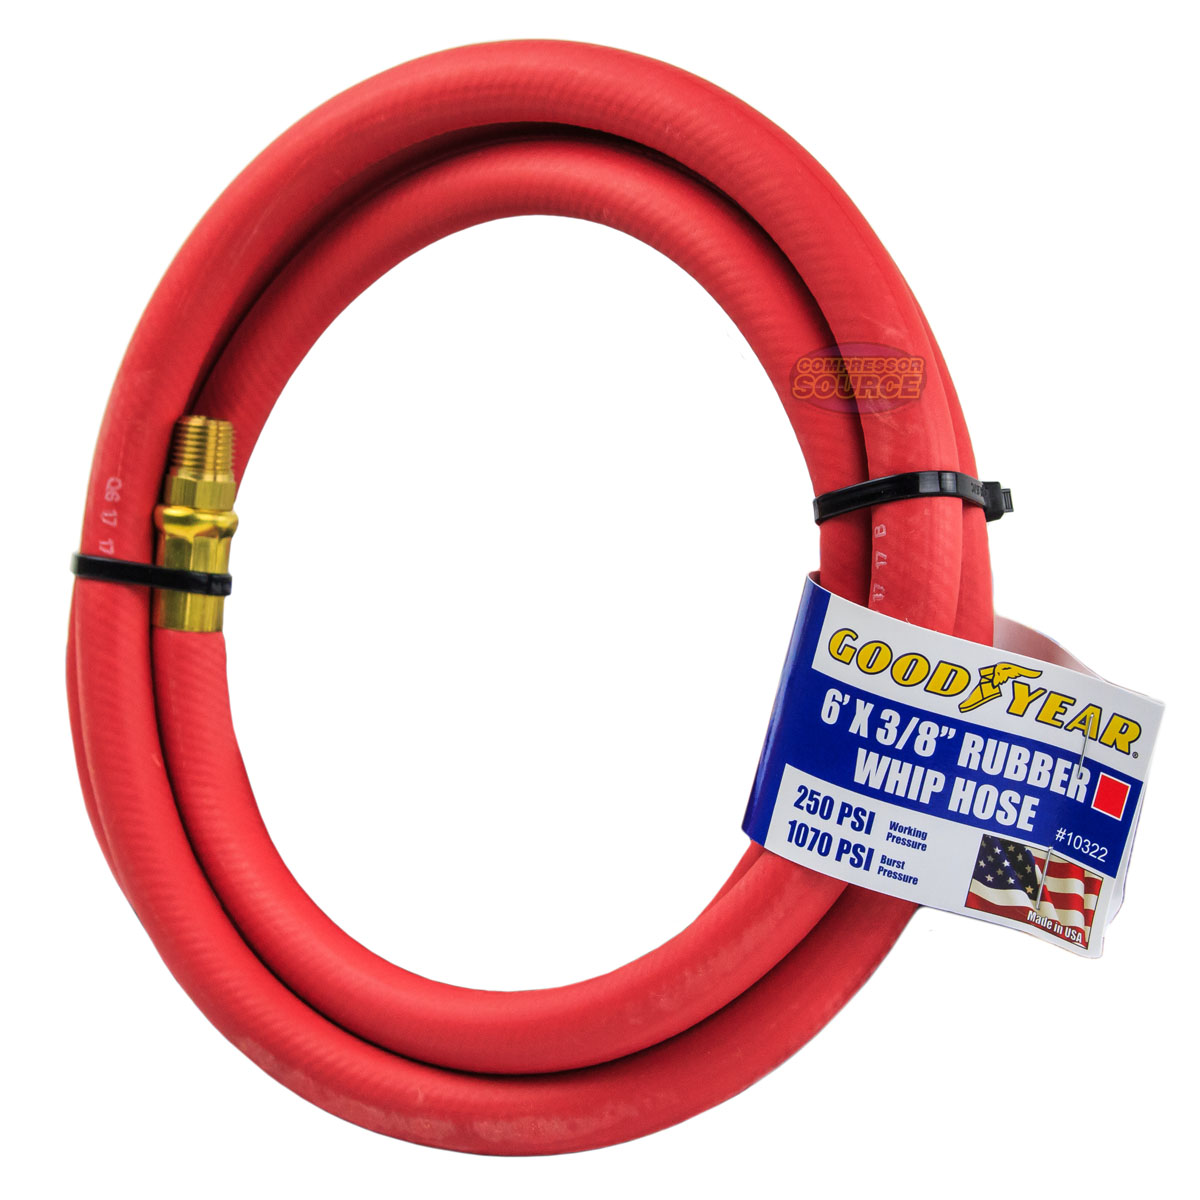 """Goodyear Rubber Hose Whip 3/' x 3//8/"""" 250 PSI Air Compressor Lead USA Made 10318"""